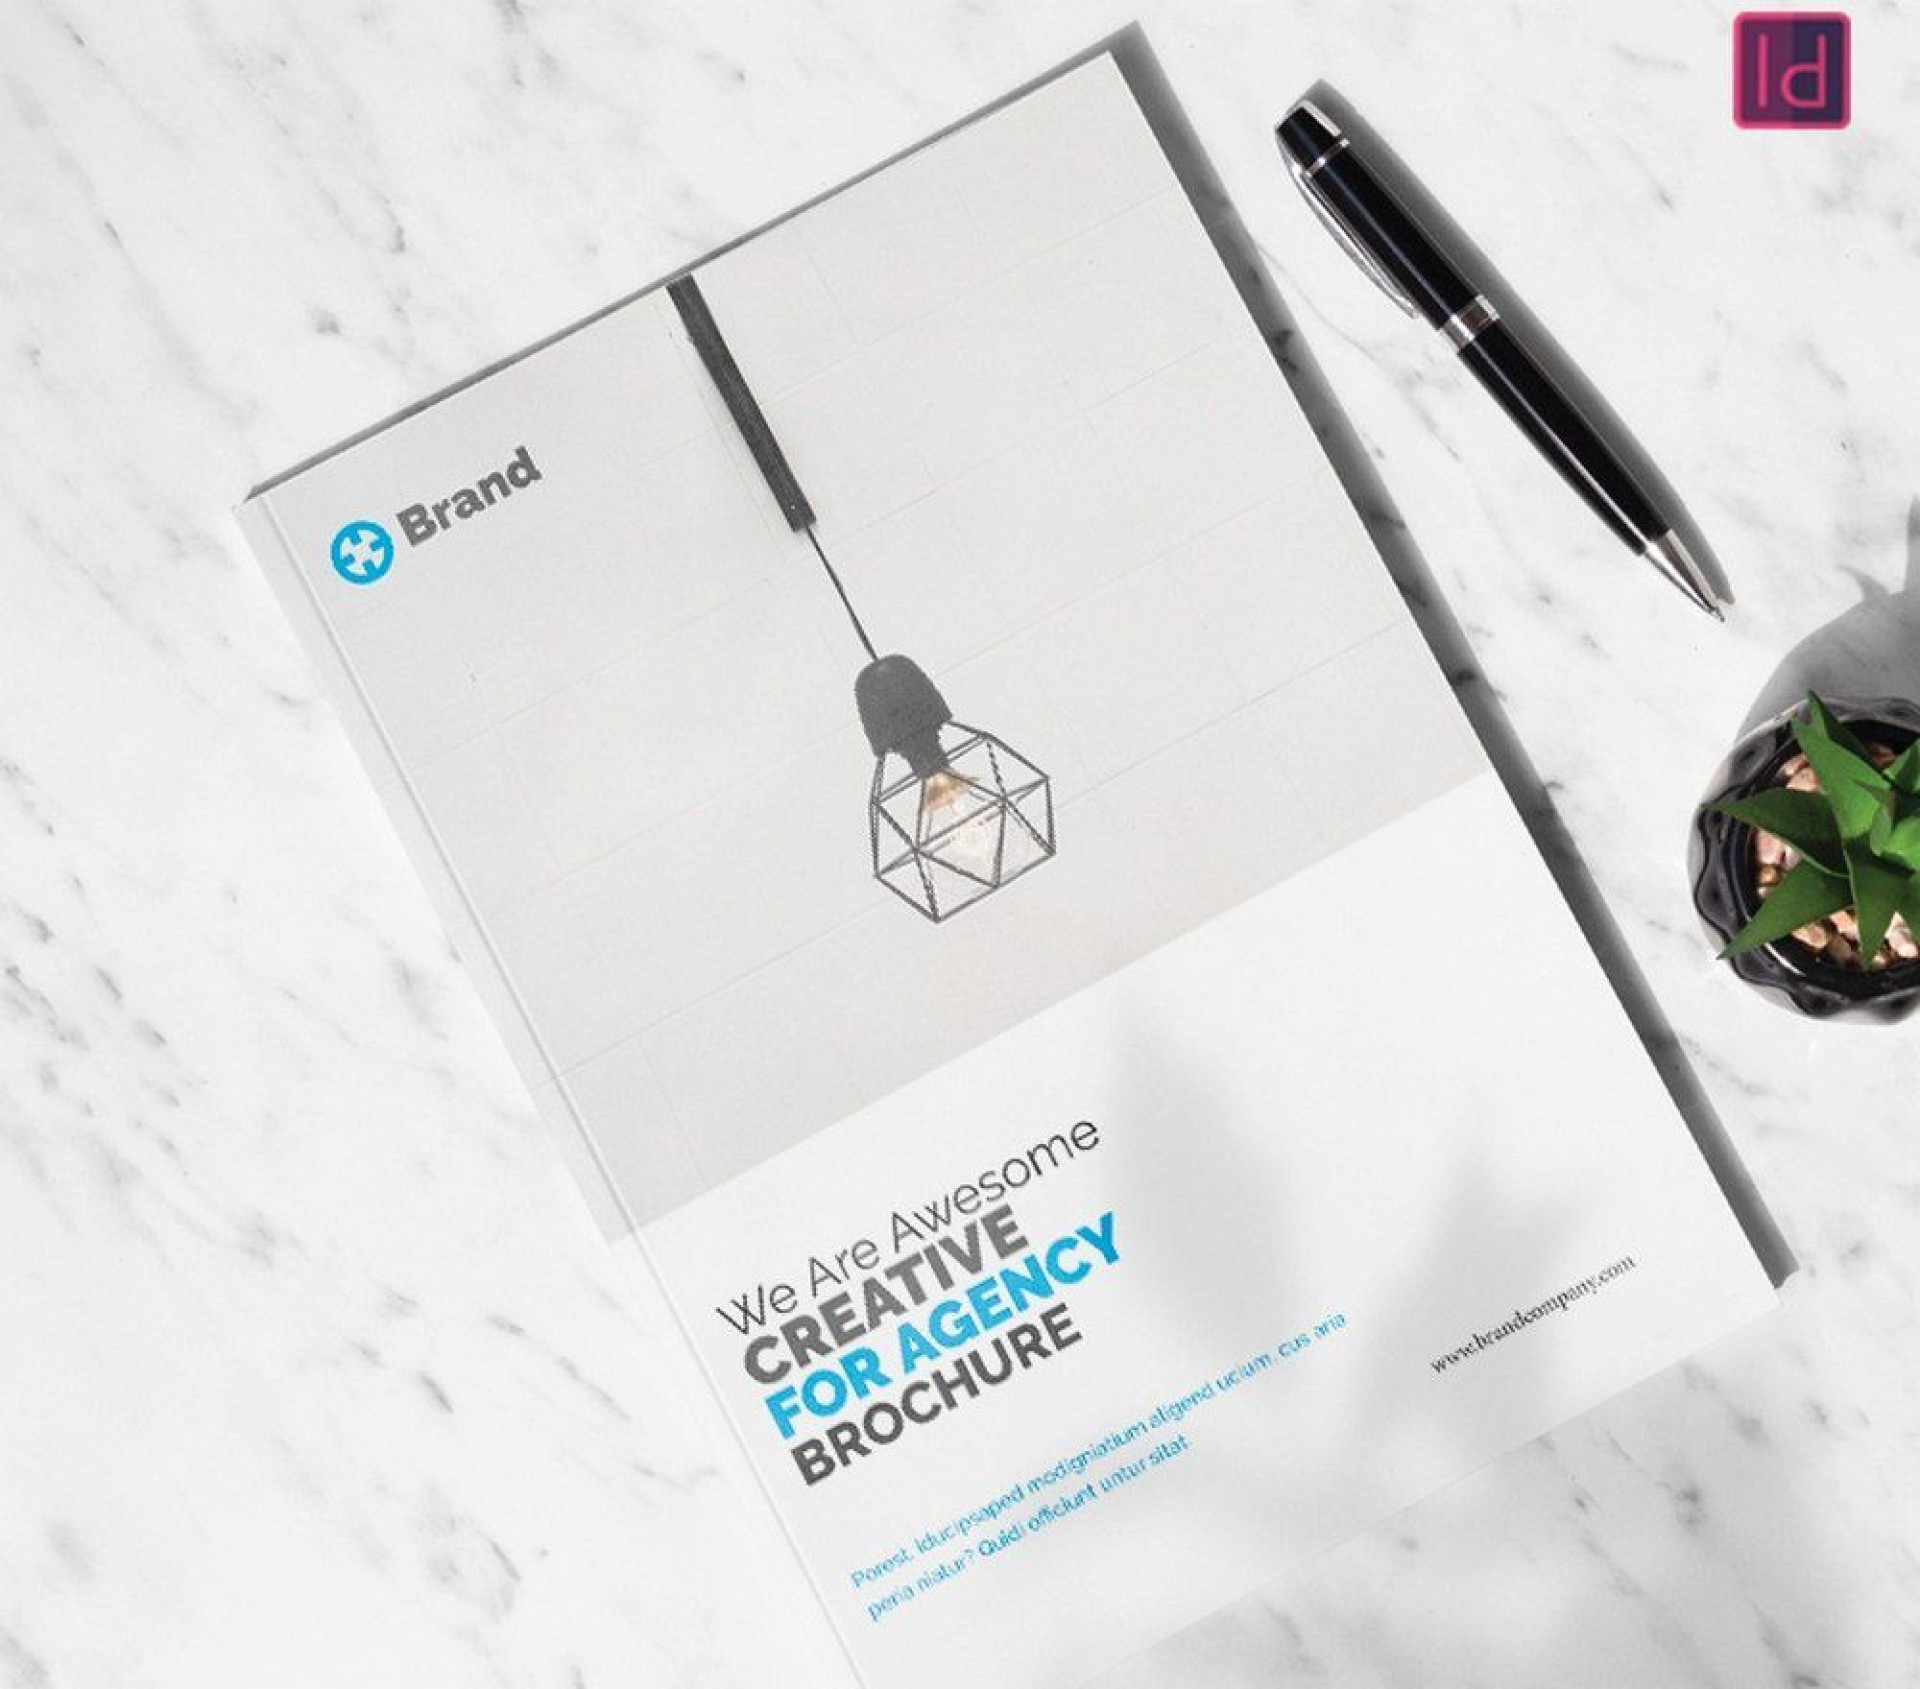 007 Stunning Adobe Indesign Brochure Template Free Download Concept 1920